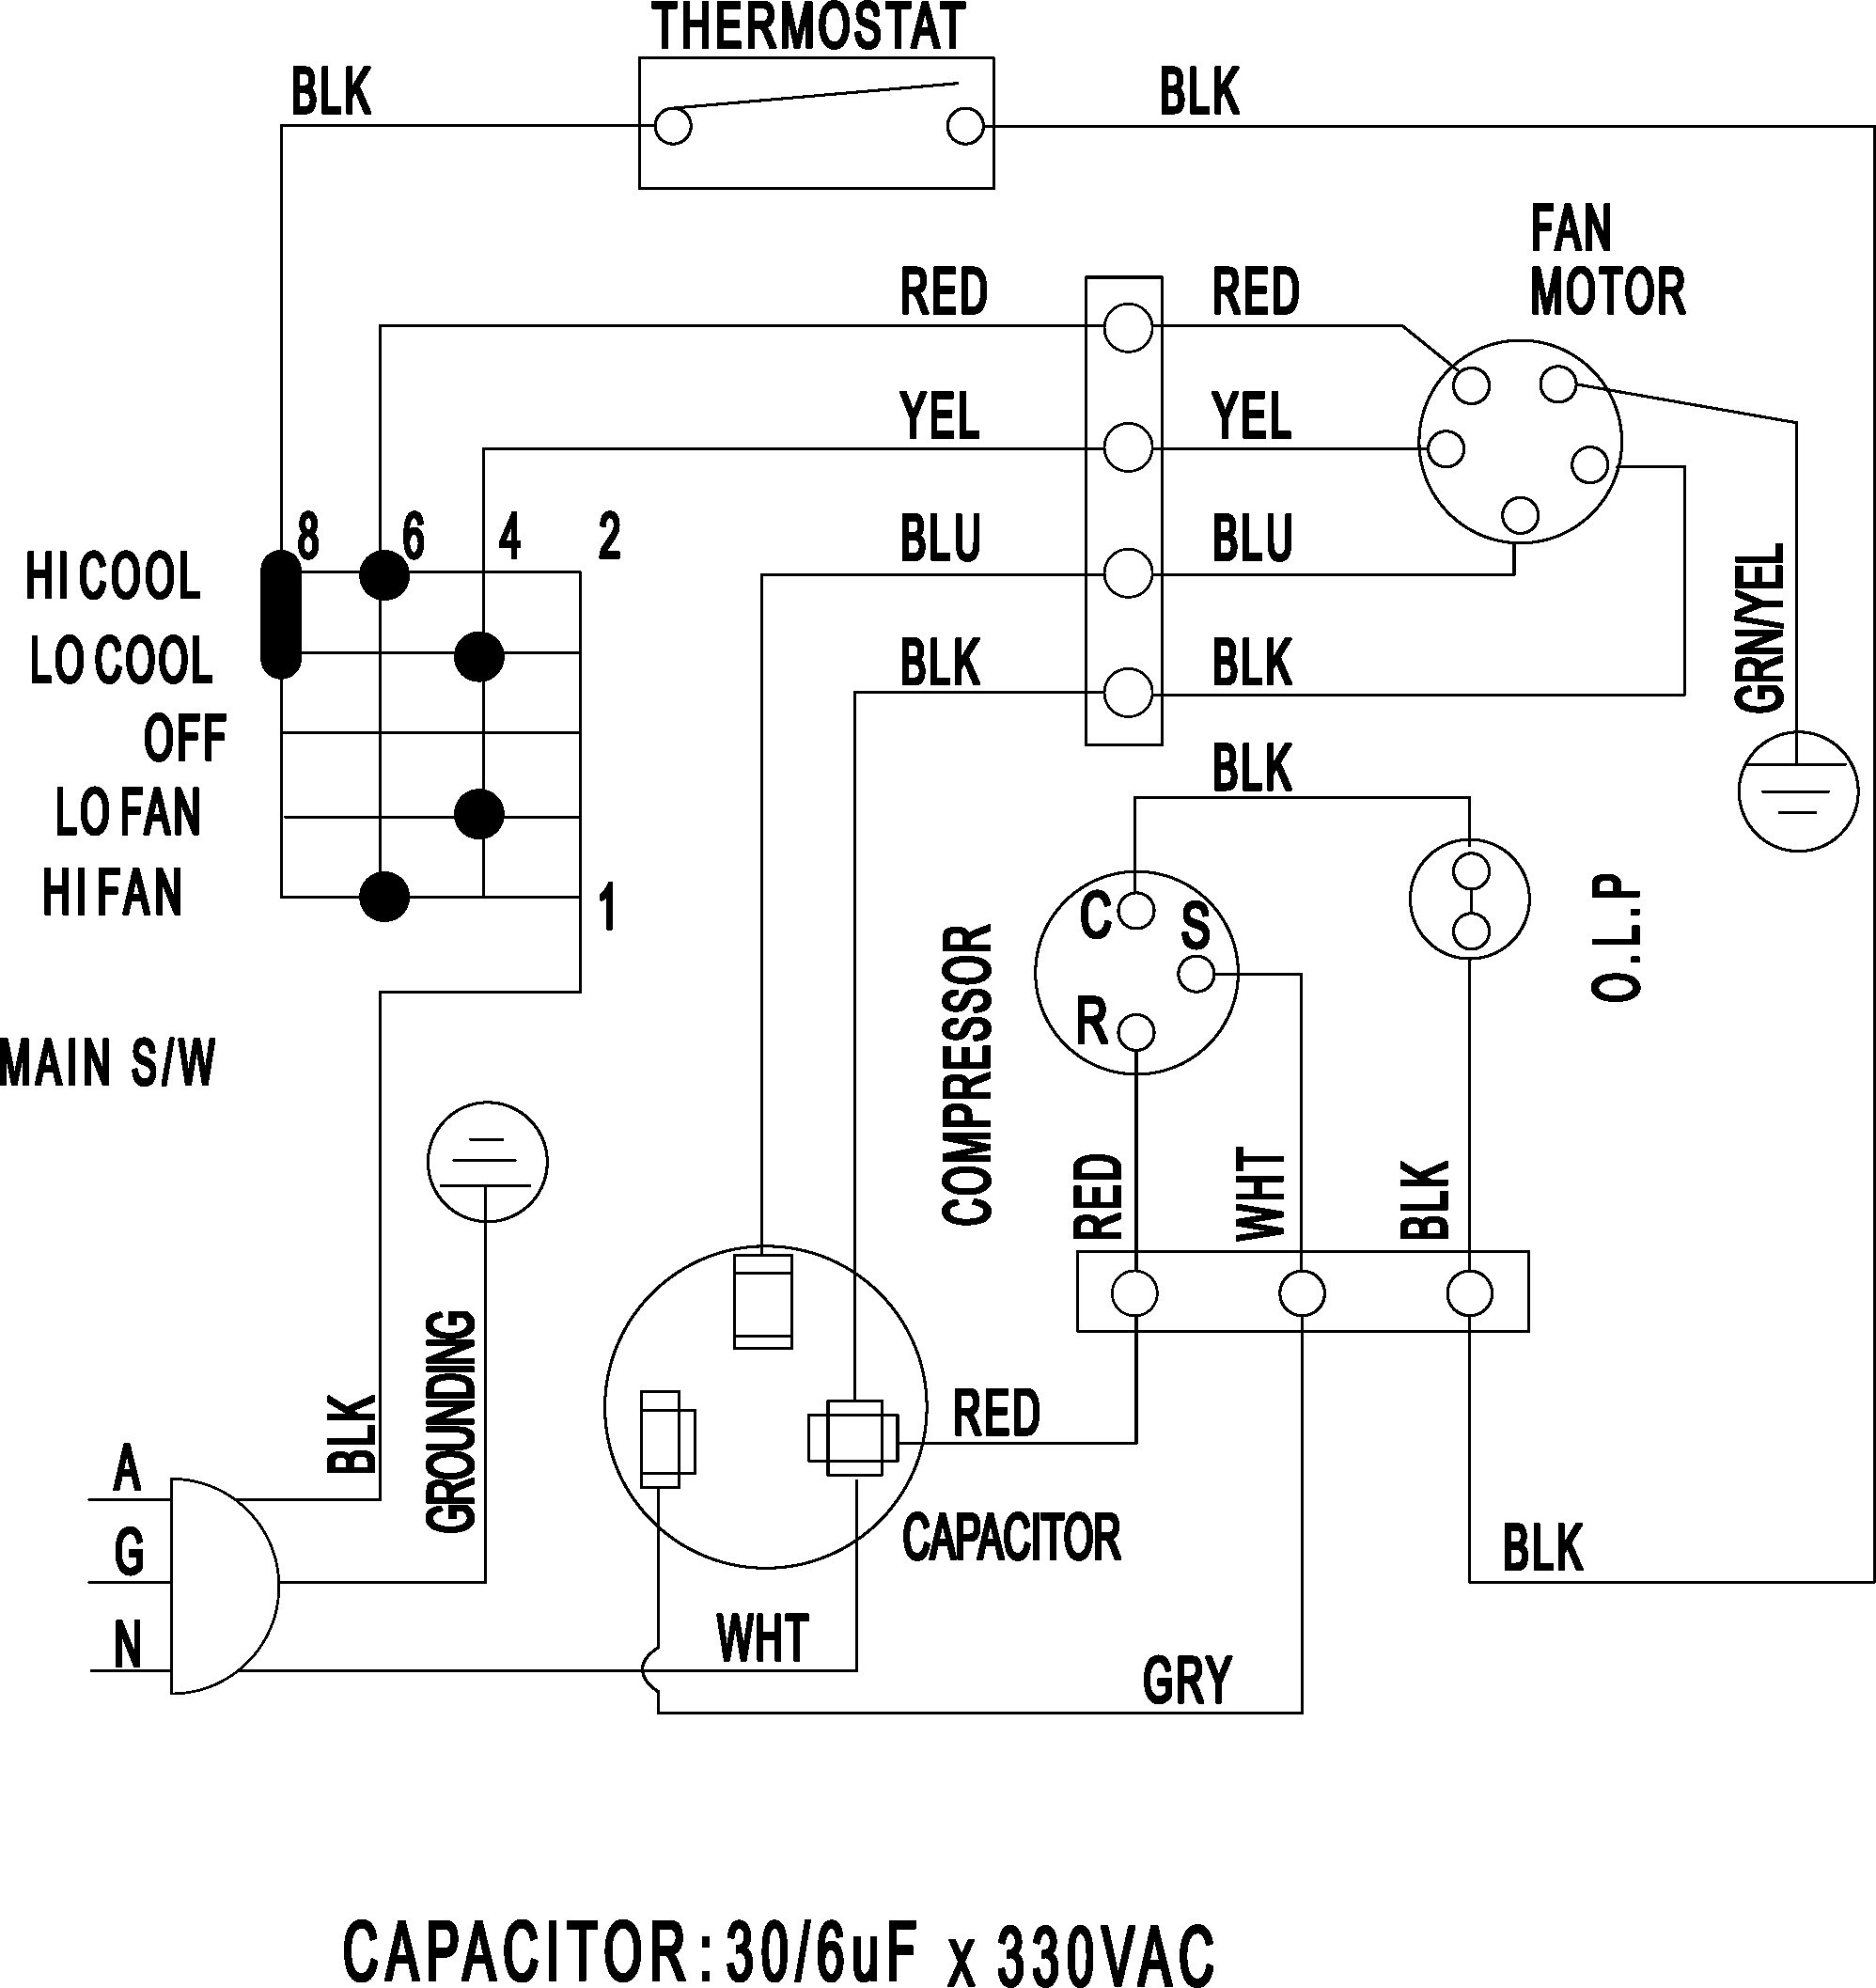 York Motor Wiring Diagram - Wiring Diagram Data Oreo - Carrier Wiring Diagram